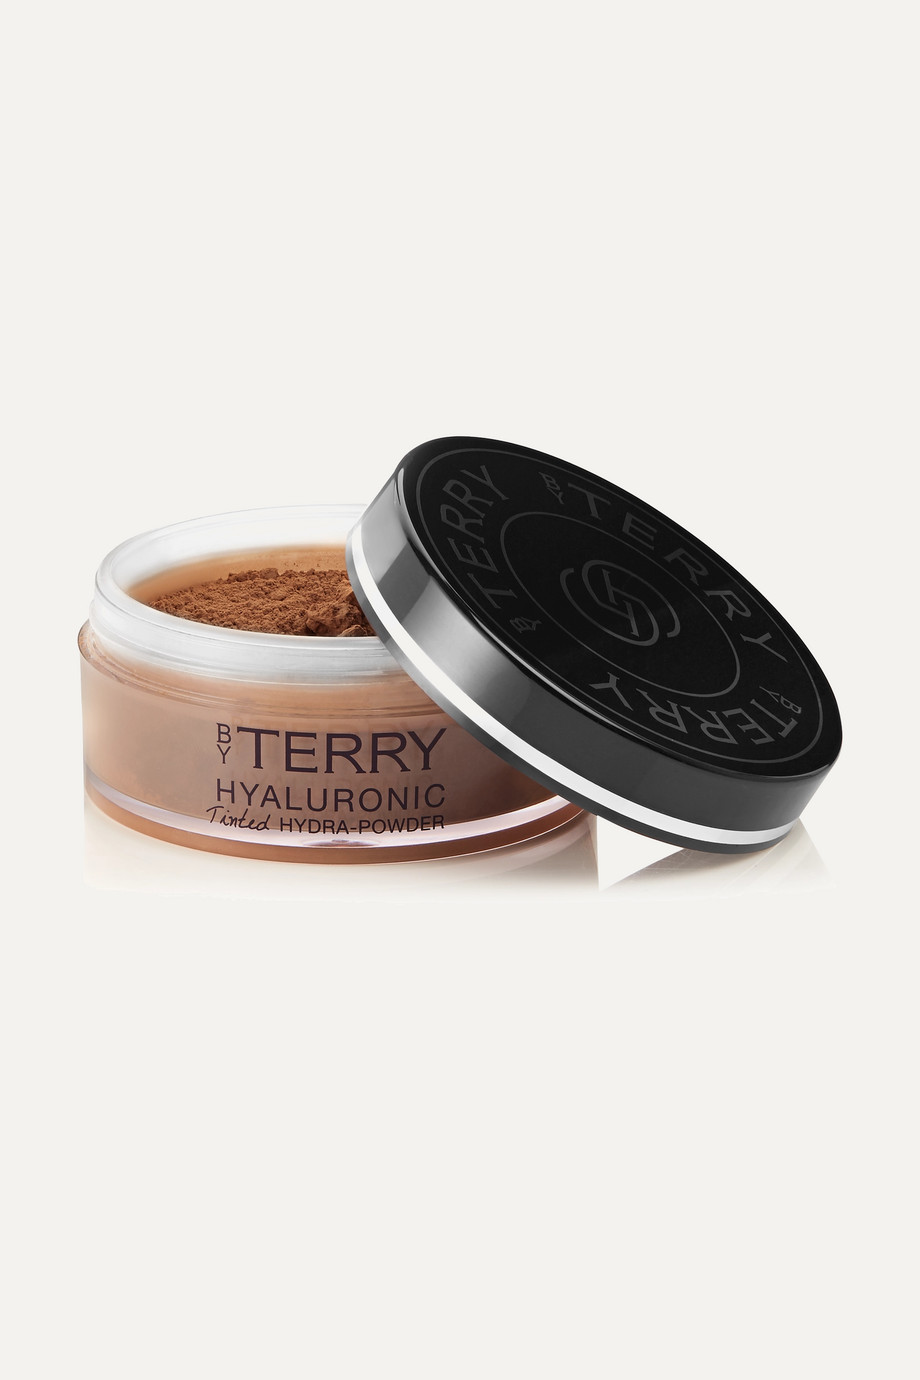 BY TERRY Poudre soin teintée extra-lissante Hyaluronic Hydra-Powder, Dark No. 600